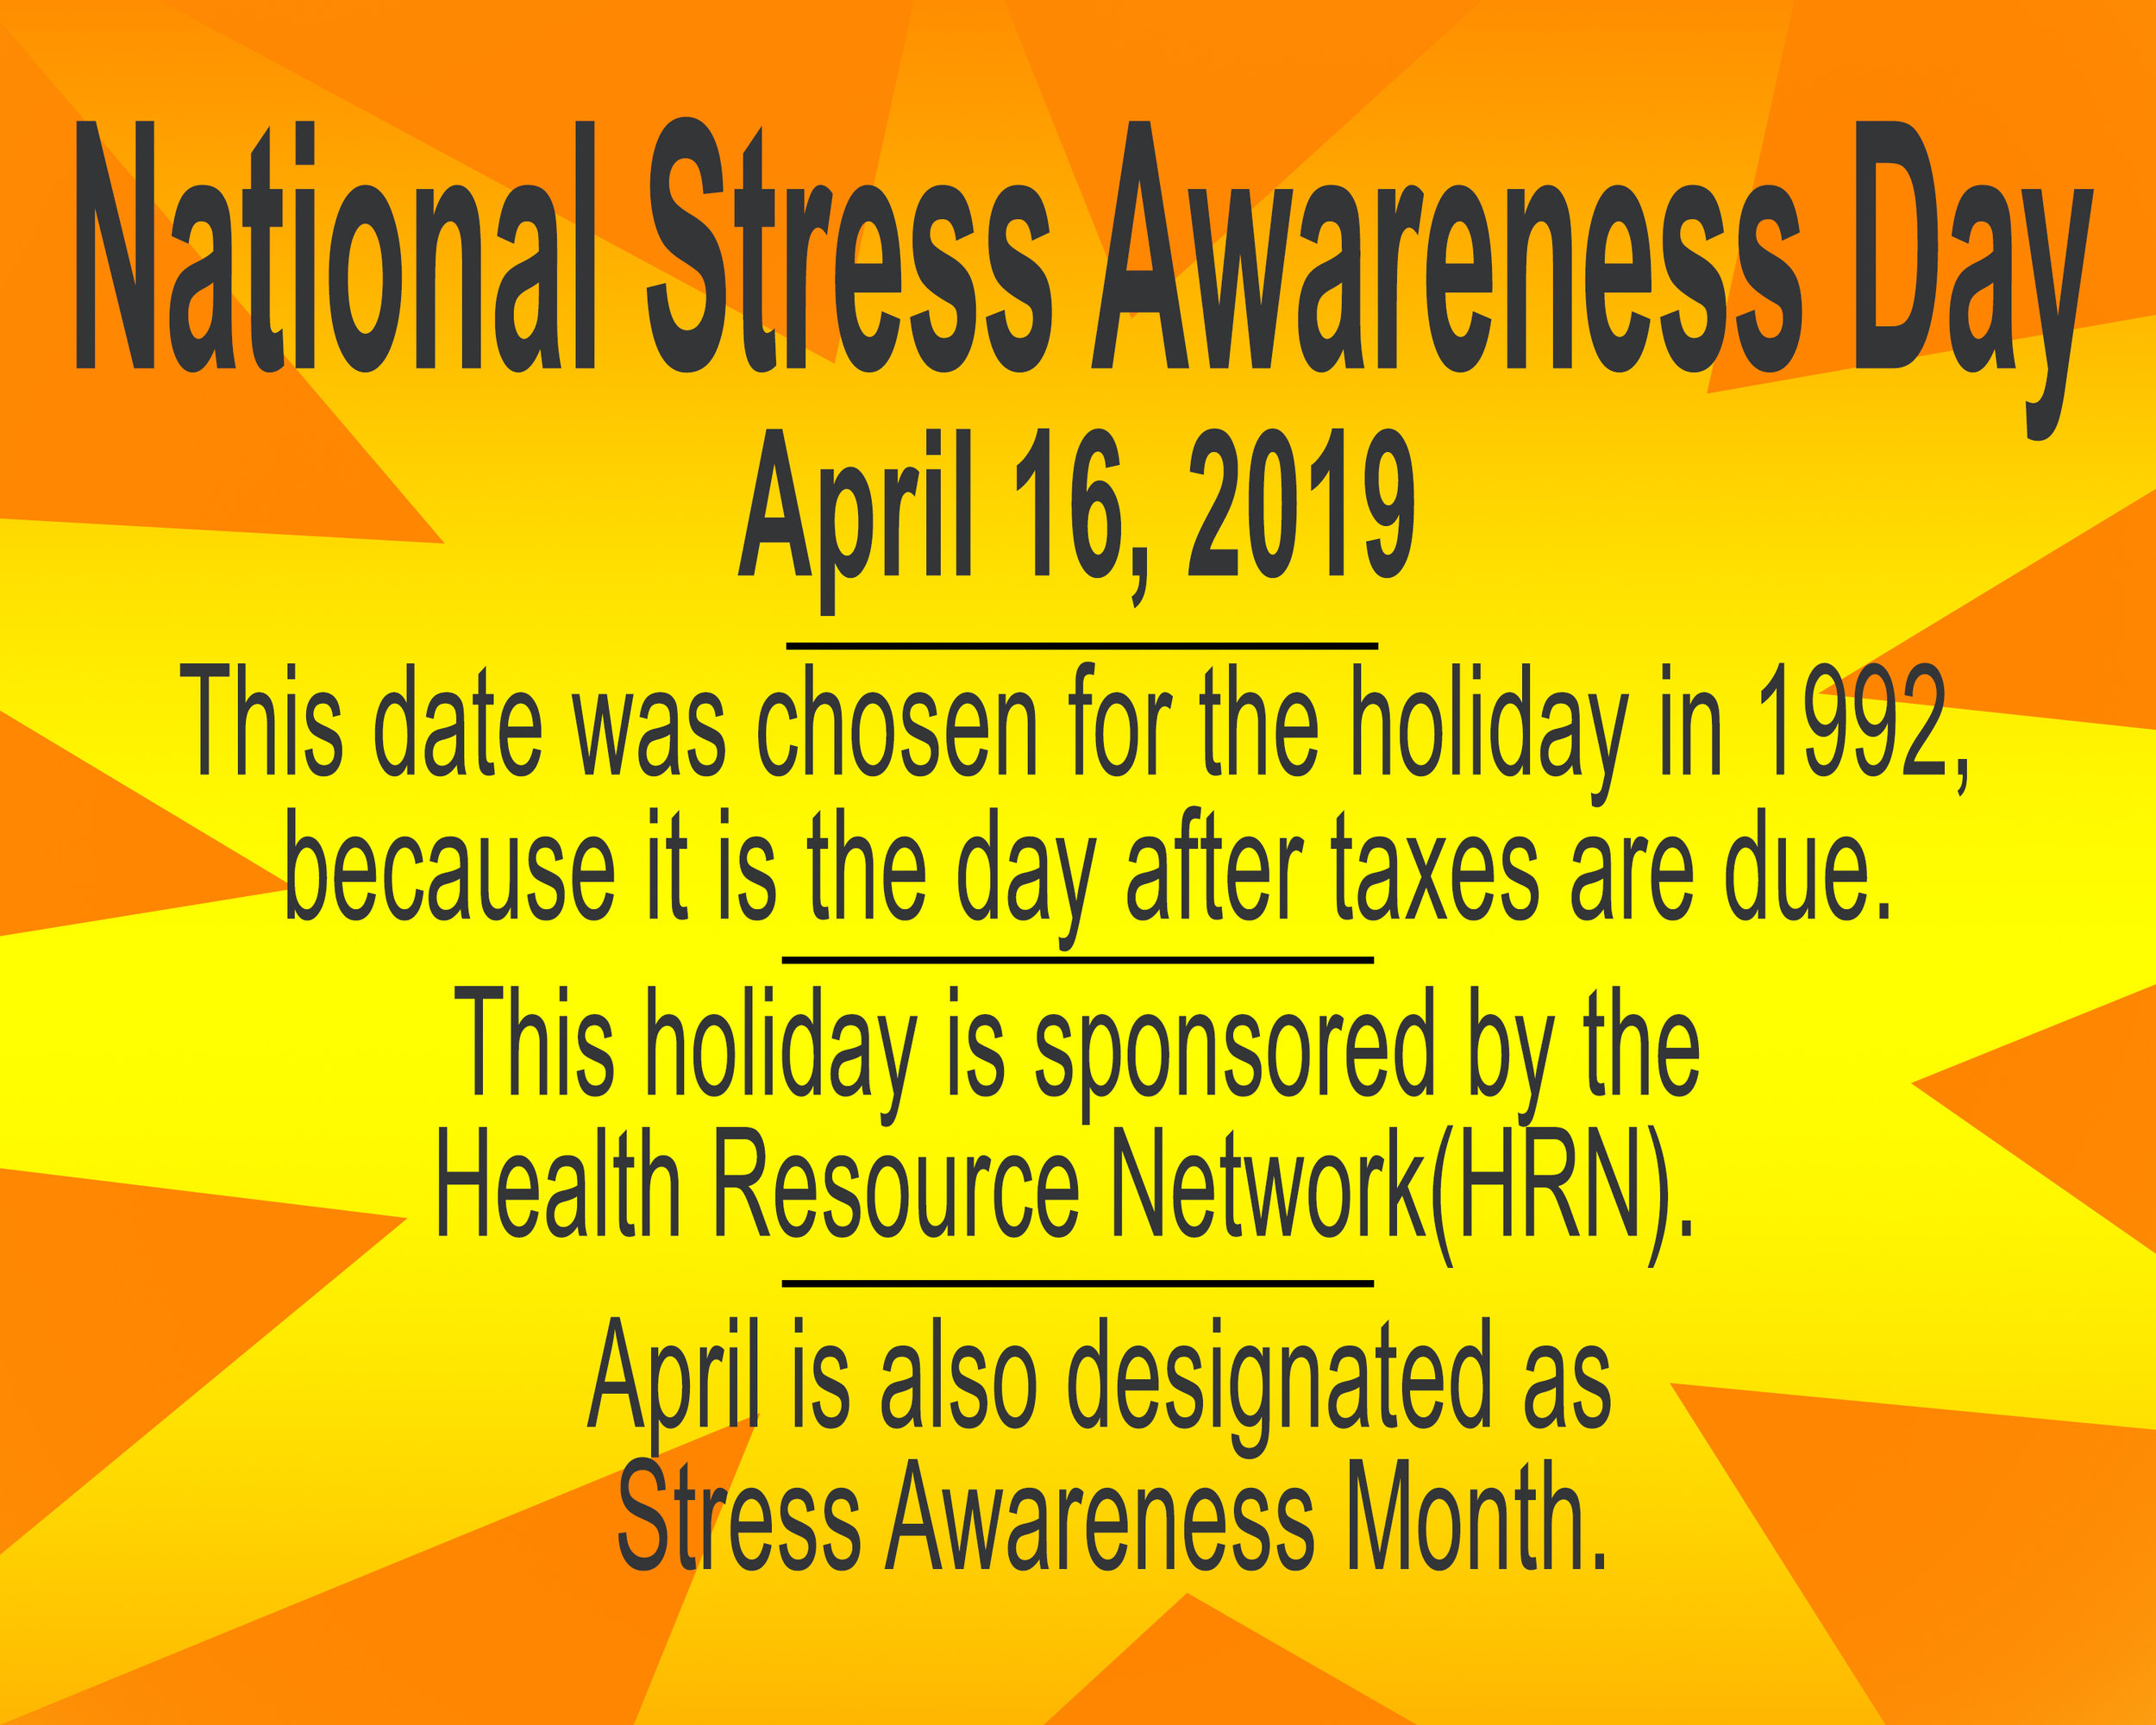 National stress awareness day on April 16, 2019 is a time to reflect on the stress in your life and a day to do something about that stress. http://www.holidayinsights.com/other/stressawareness.htm